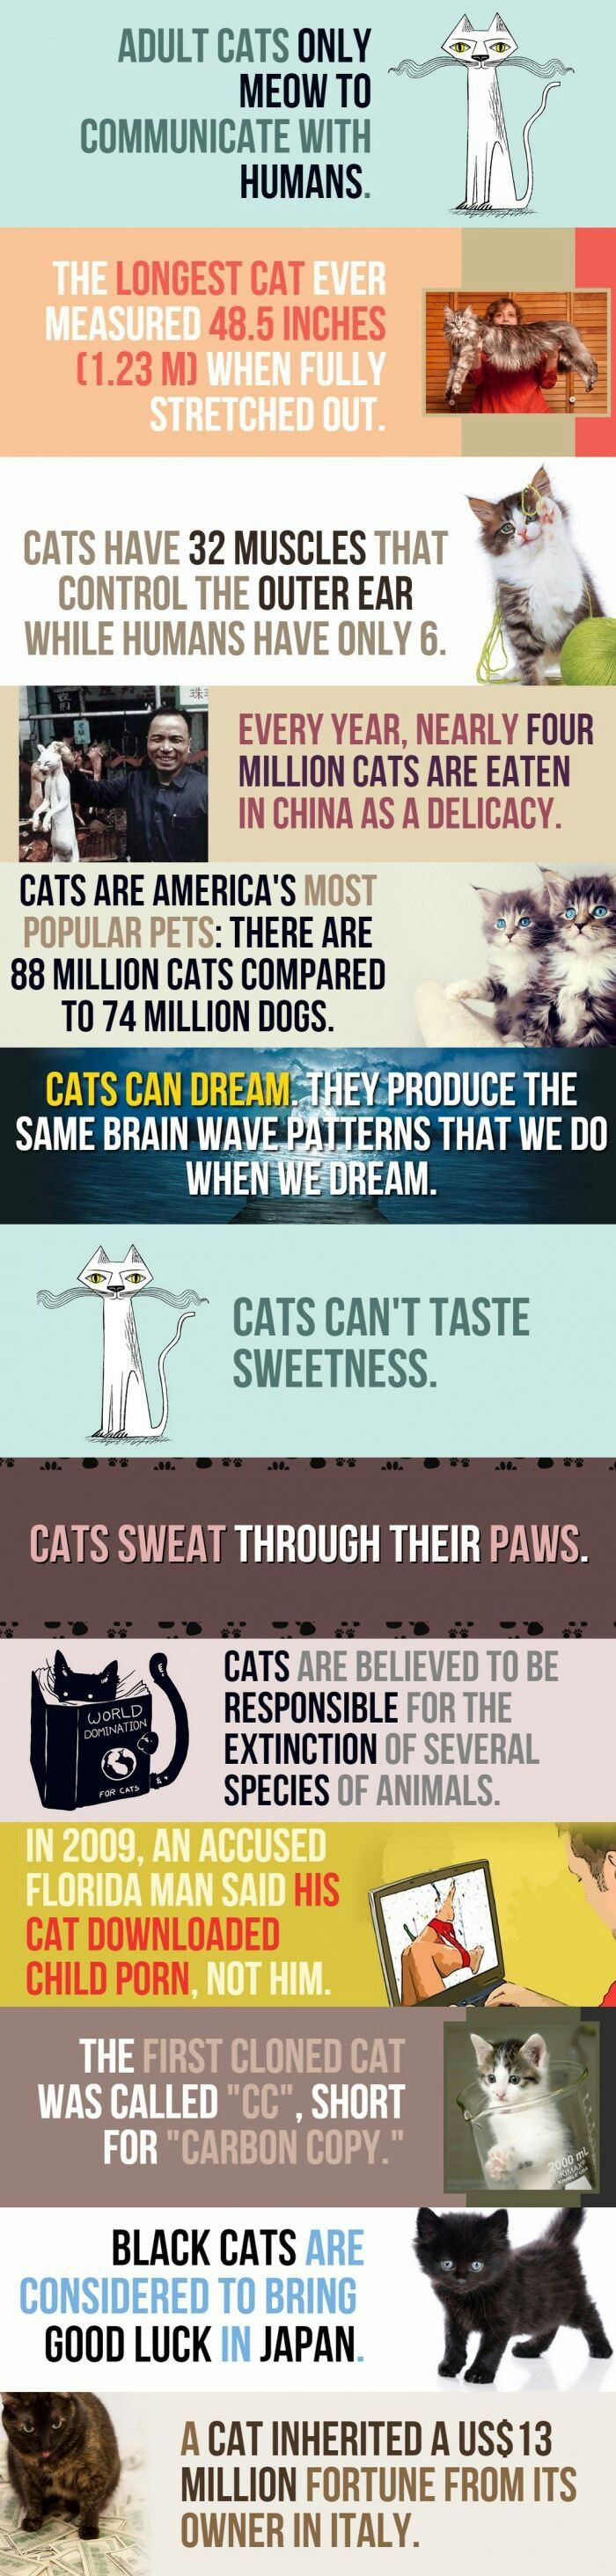 Facts about cats pt.1